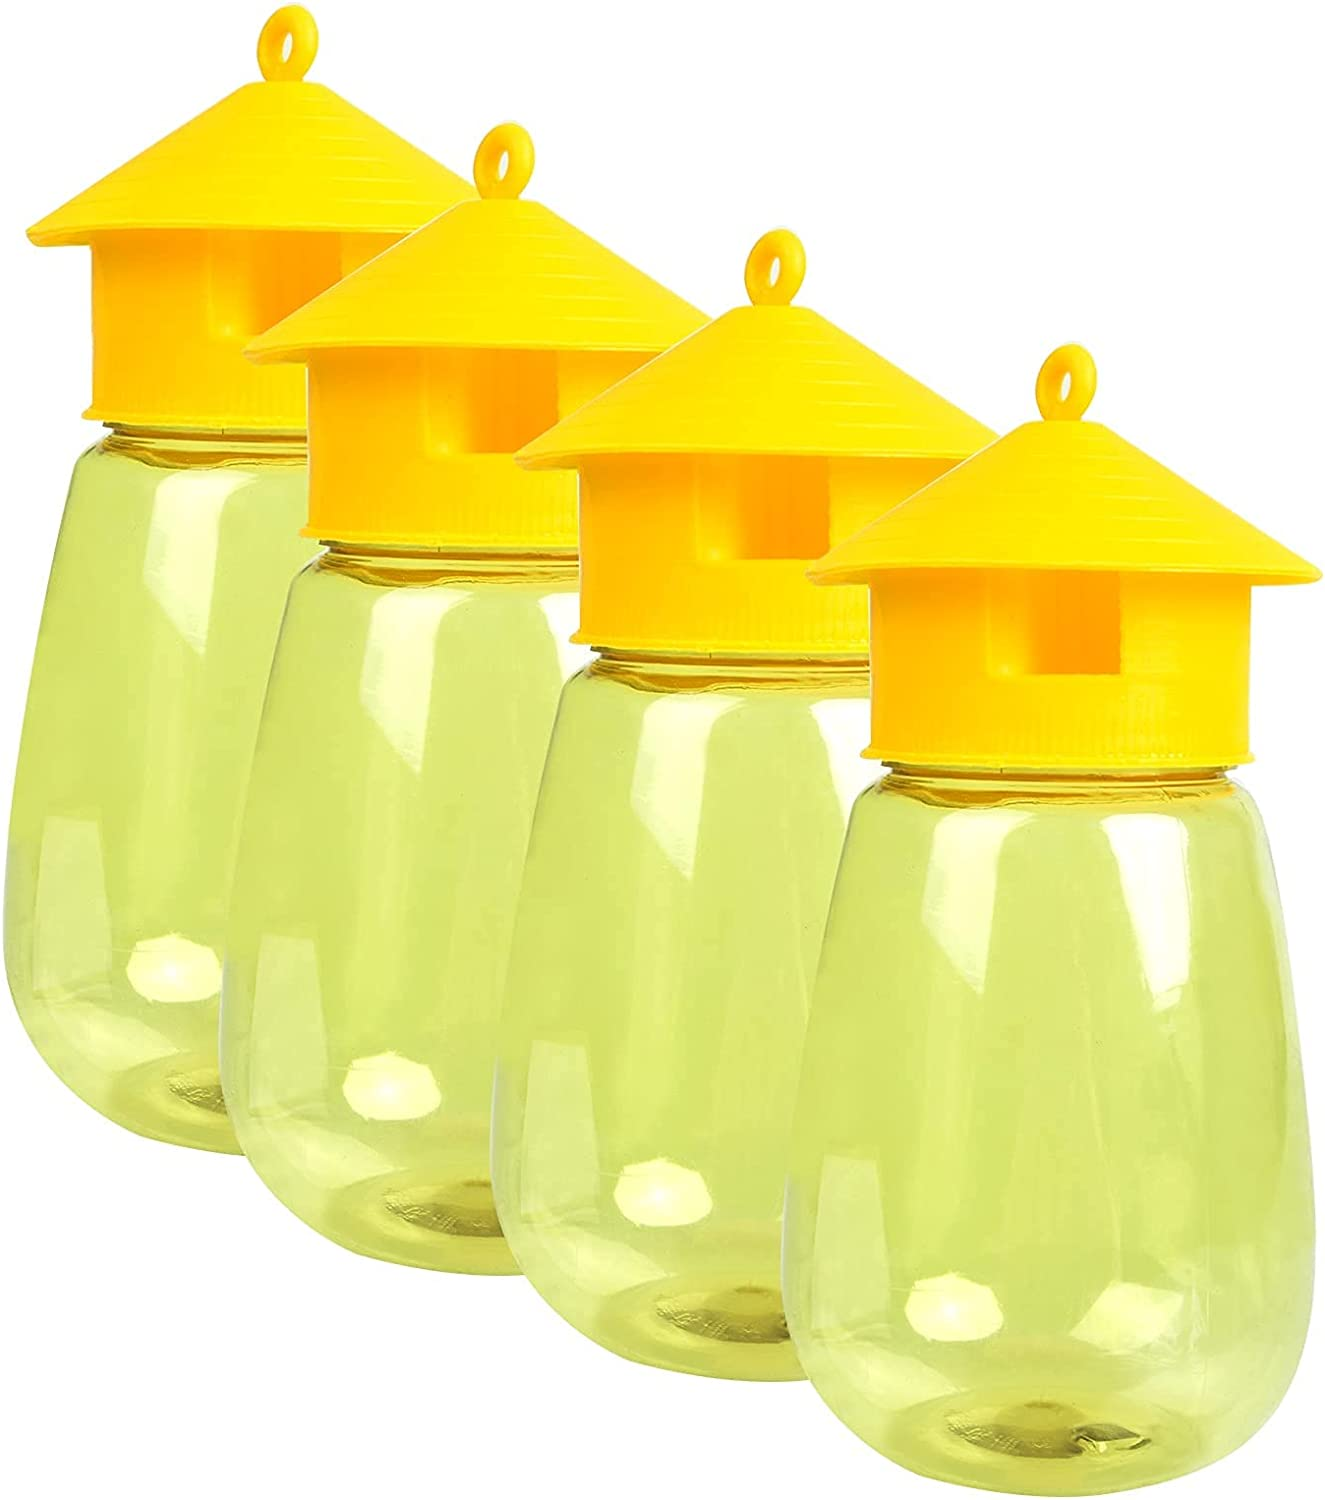 Dwcom 4 Pack Fruit Fly Traps Outdoor, Reusable Fly Traps and Fly Catcher,Insect Bug Killer for Garden Farm